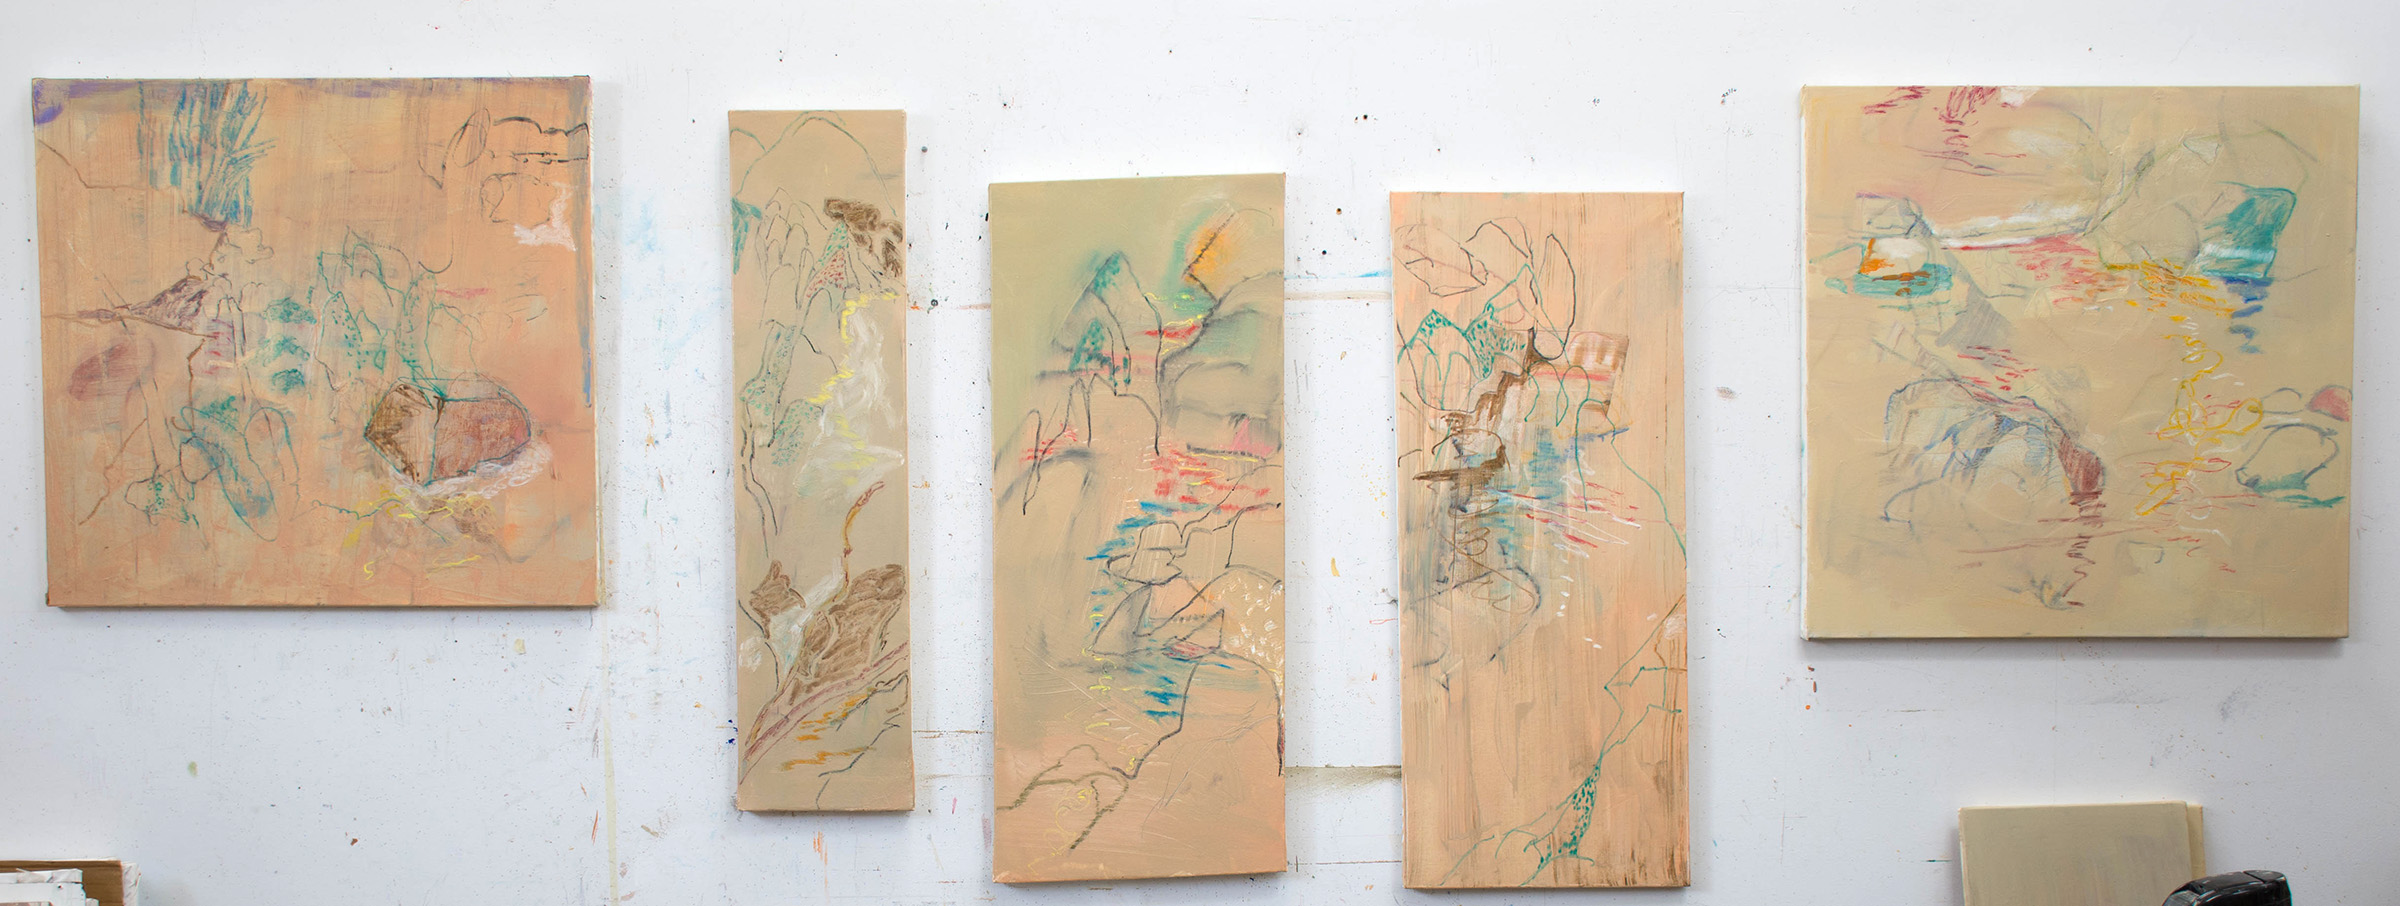 5 recent motion series paintings on my studio's east wall. the one i started today is second in from the right